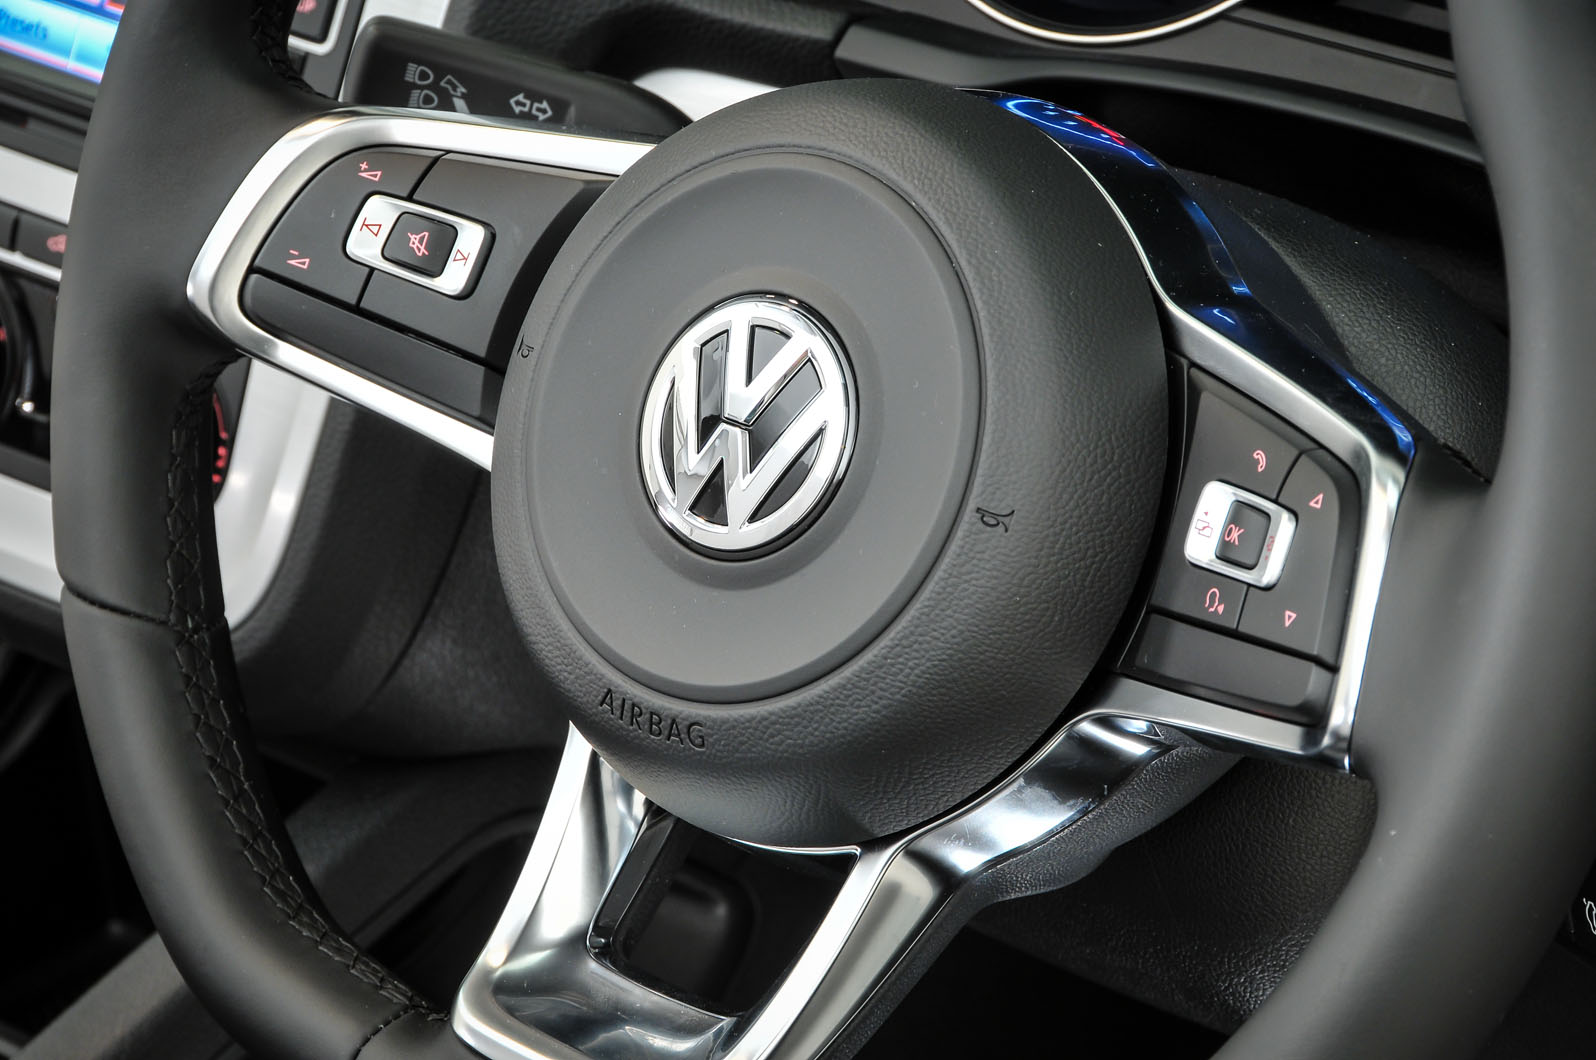 ... Vw Tiguan/page/2/privacy Statement | Specs, Price, Release Date